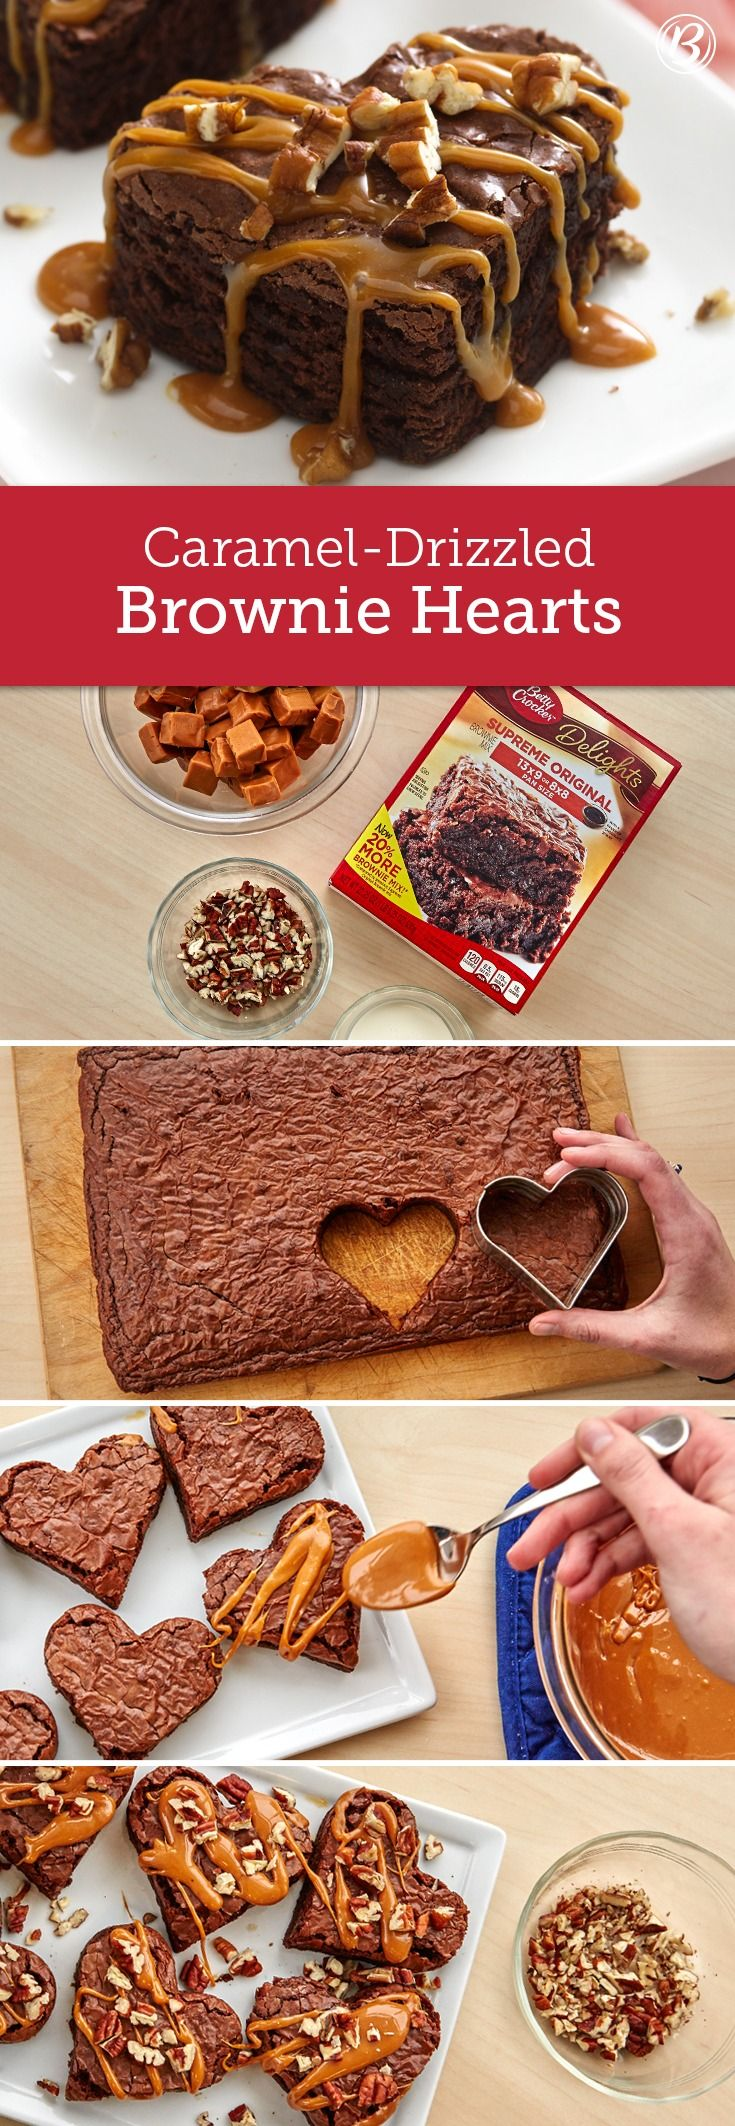 From-a-box brownies get transformed into the perfect homemade Valentine's Day treat. Shaped with a heart cookie cutter, drizzled with gooey caramel and topped with chopped pecans, these brownies couldn't be easier to make (or eat)!